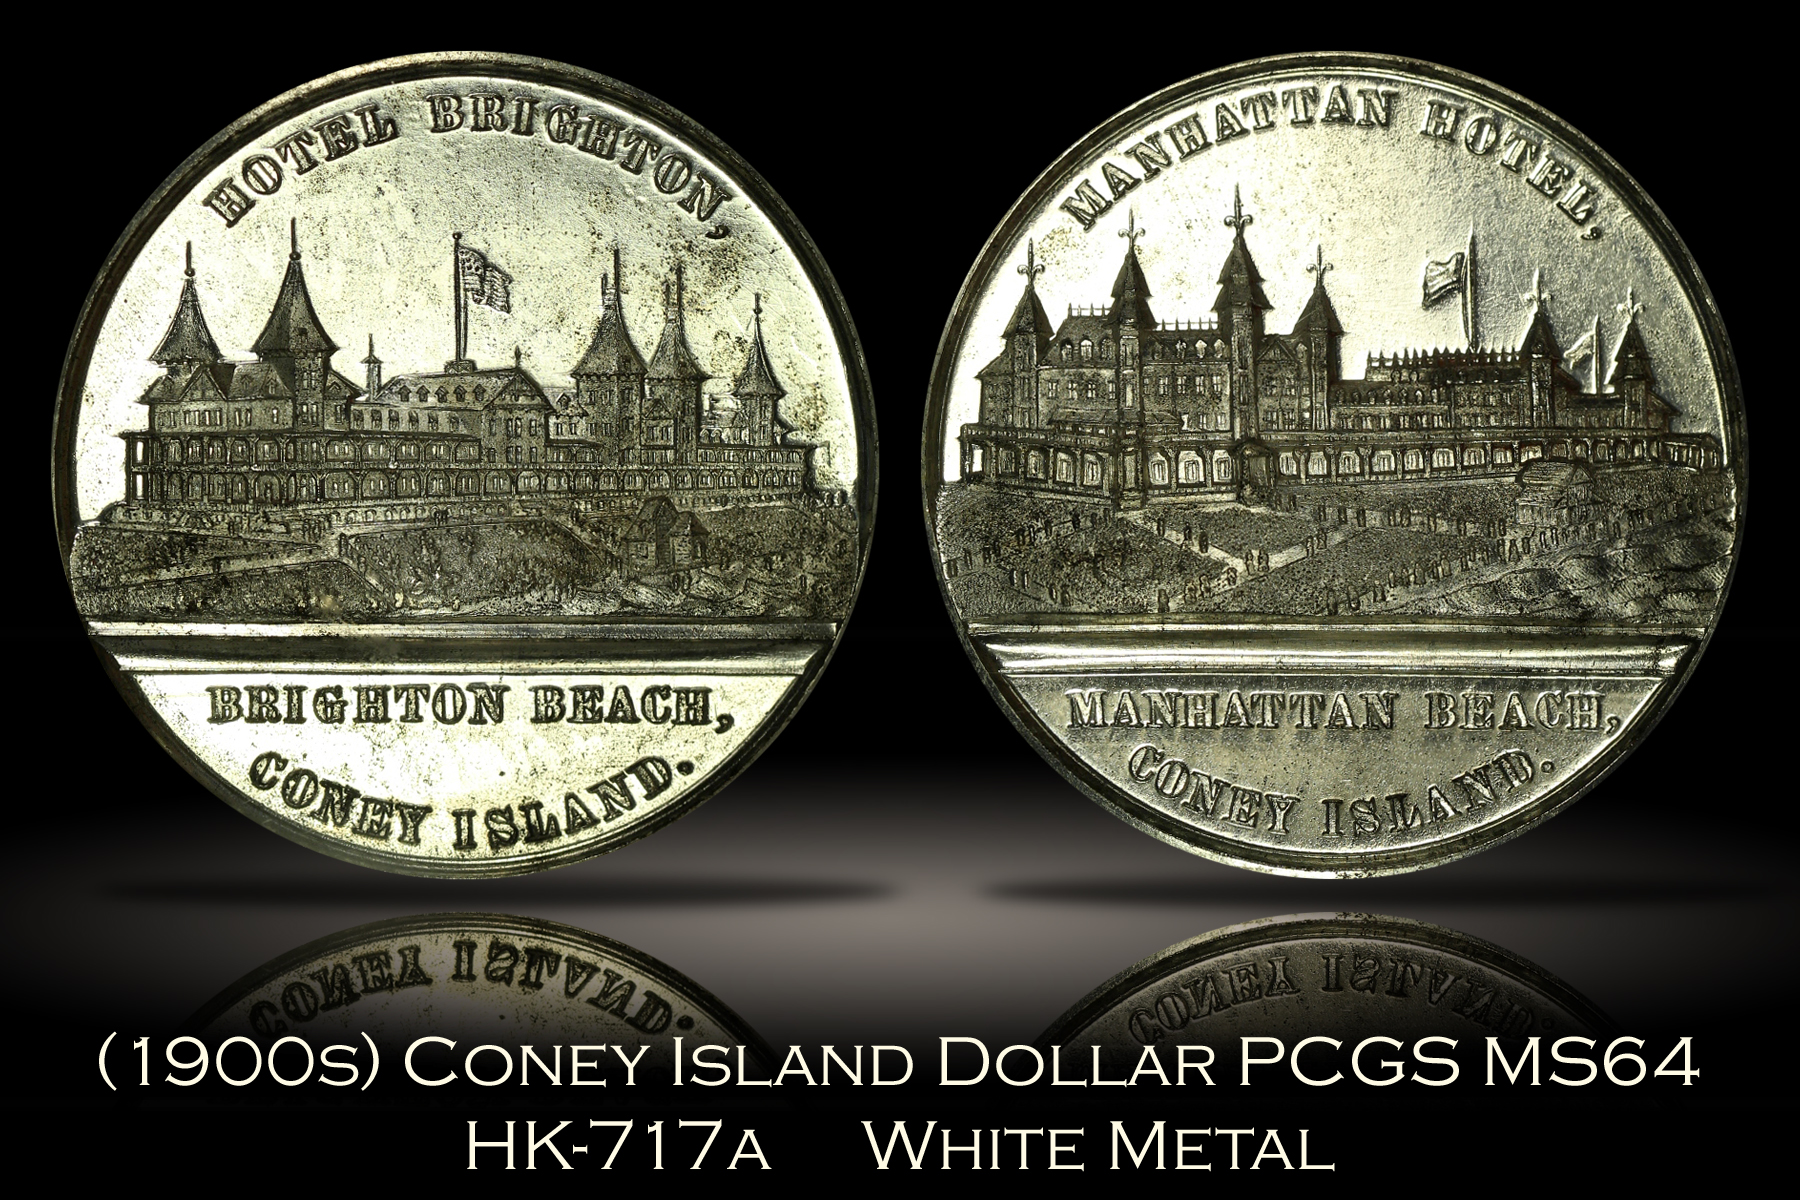 (1900s) Coney Island Dollar HK-717a PCGS MS64